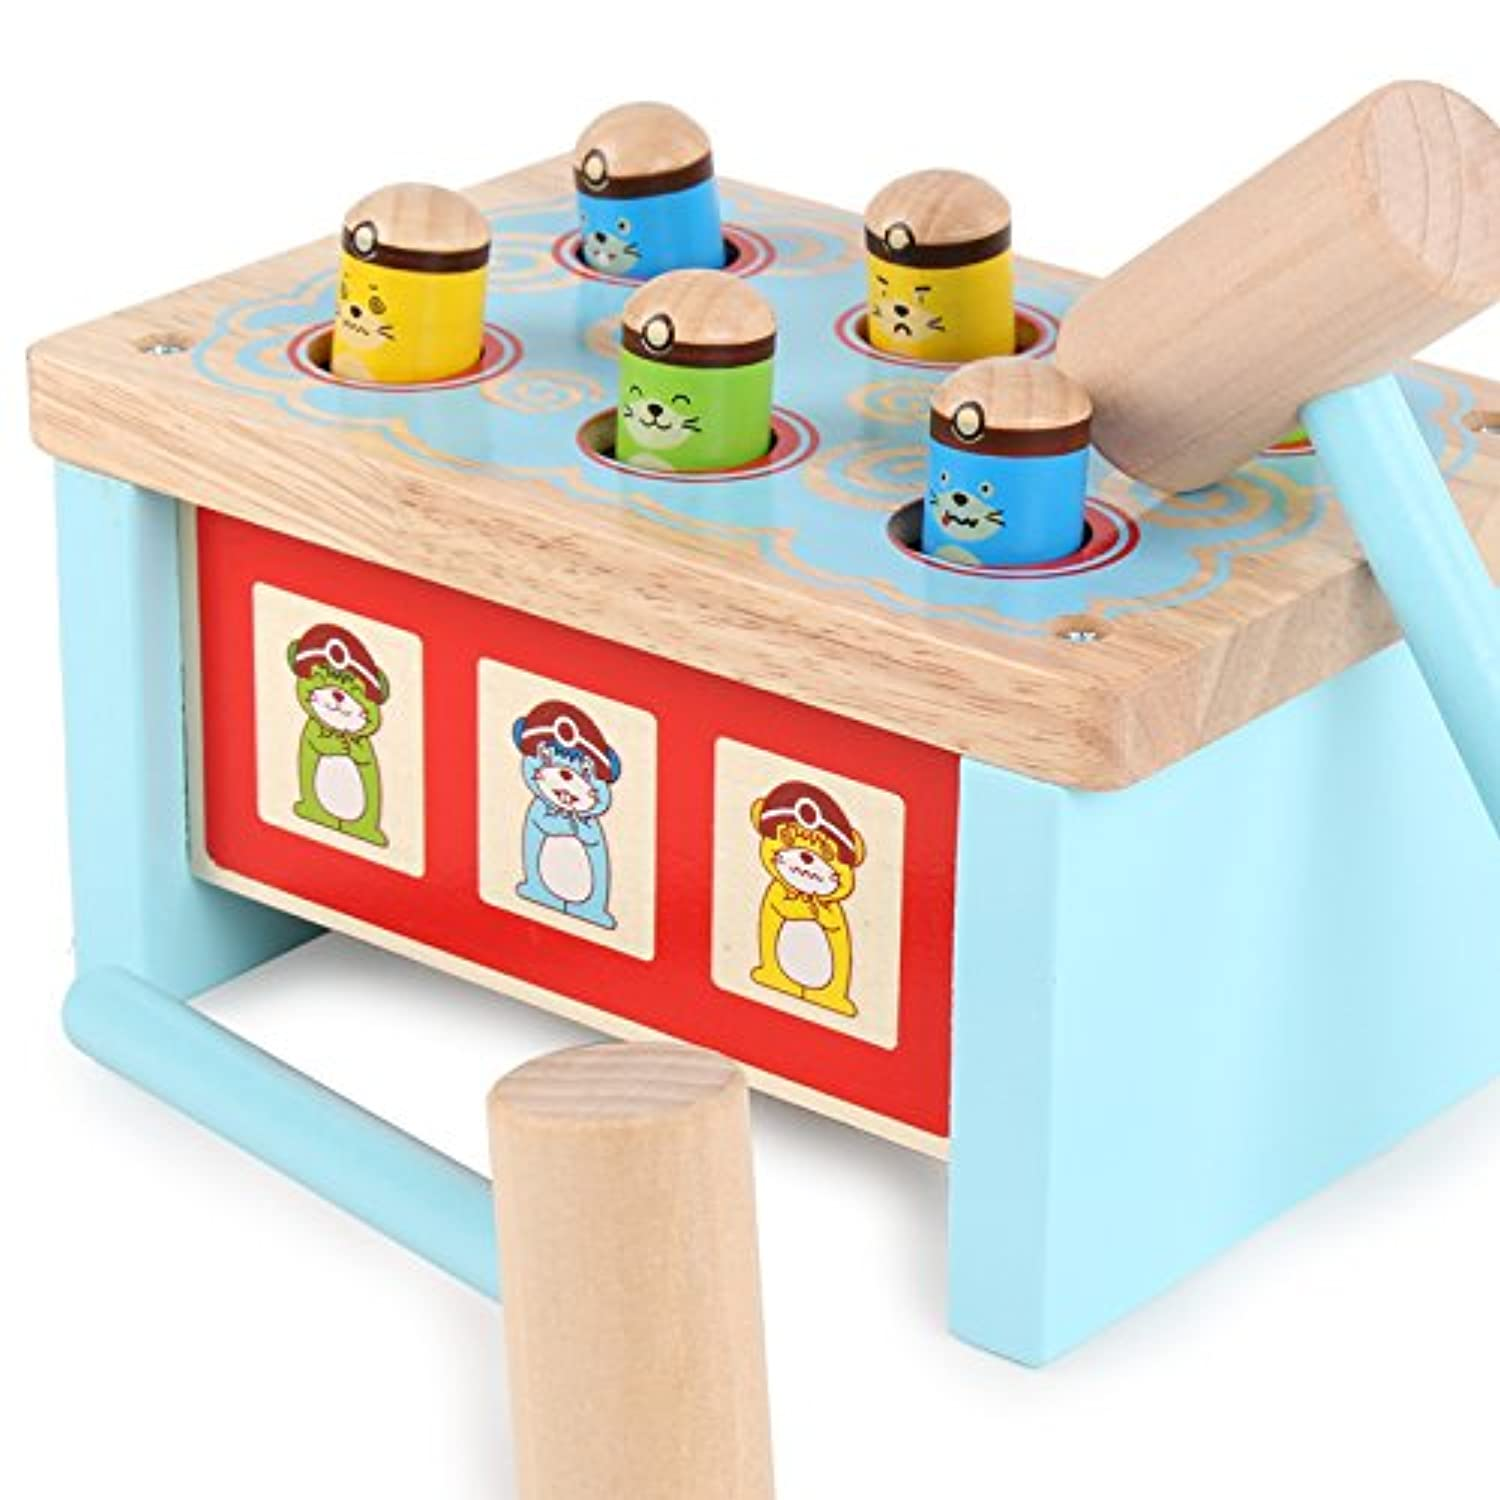 (Blue) - Early Educational Wooden Toys Whack-a-mole Noise Marker Tap on a Toy Cheering Stick Children Play Hamster